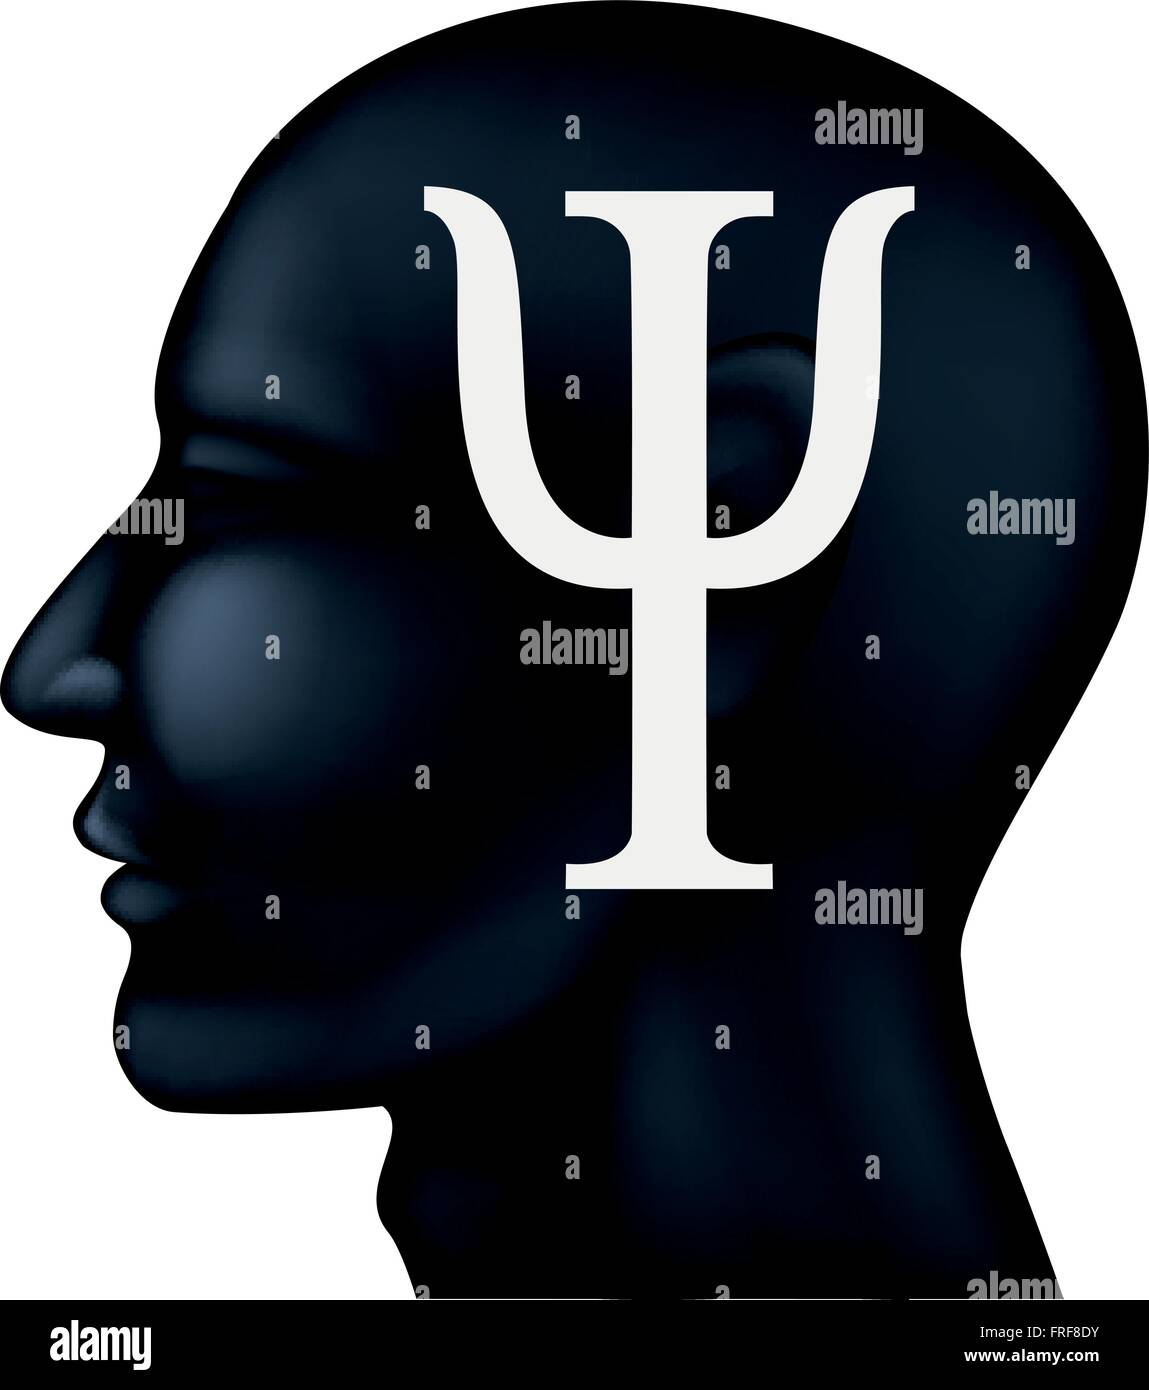 Psychiatry symbol on people silhouette - Stock Vector